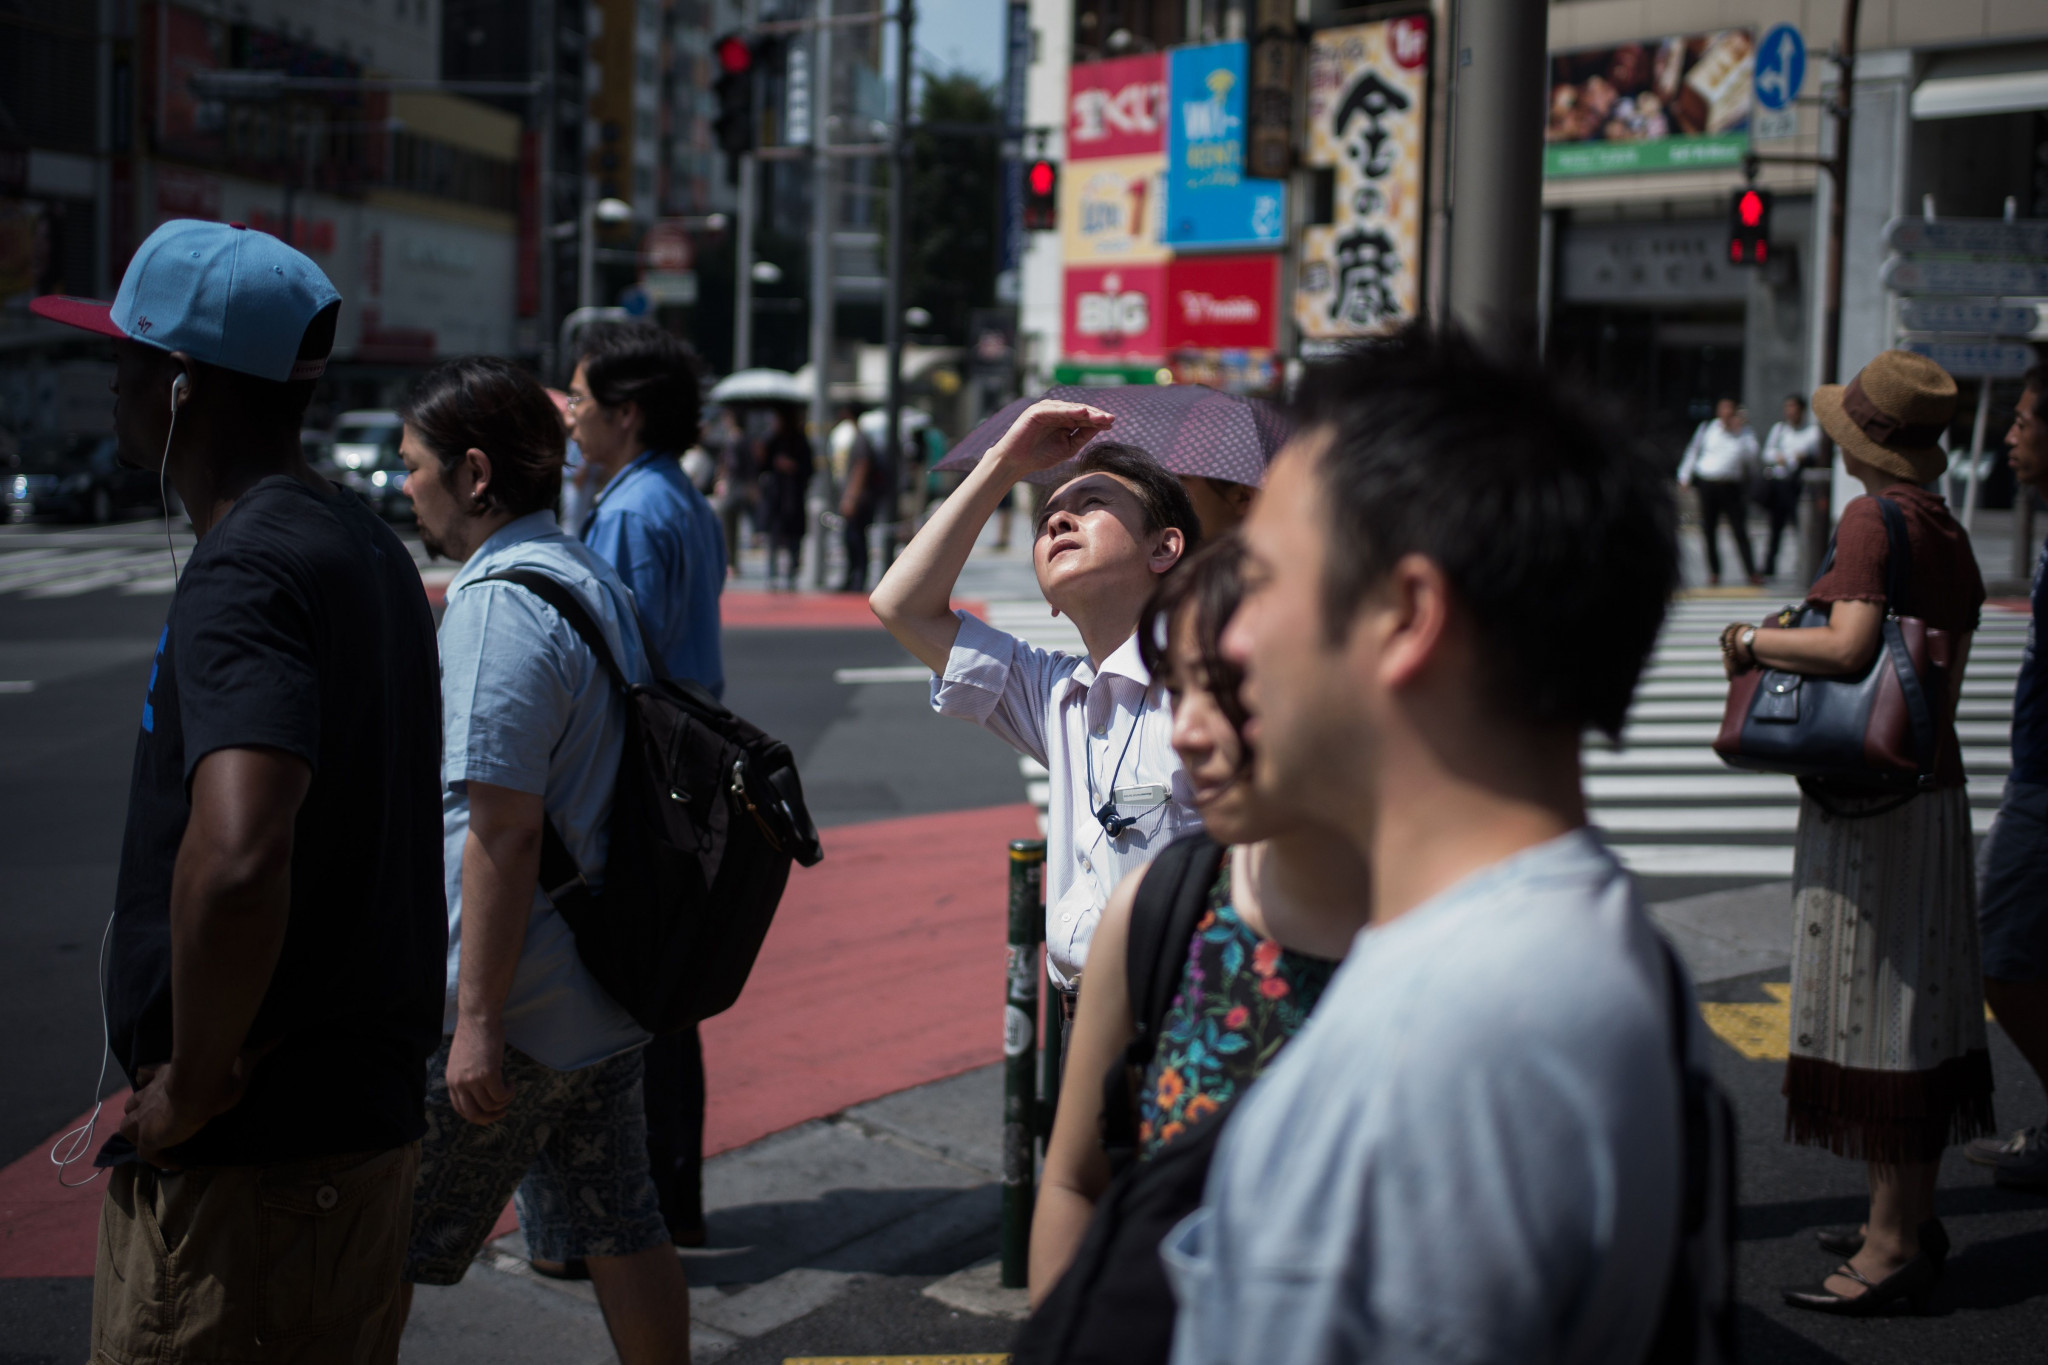 Nearly 100 people died of heatstroke in Tokyo in July as the city suffered record temperatures ©Getty Images